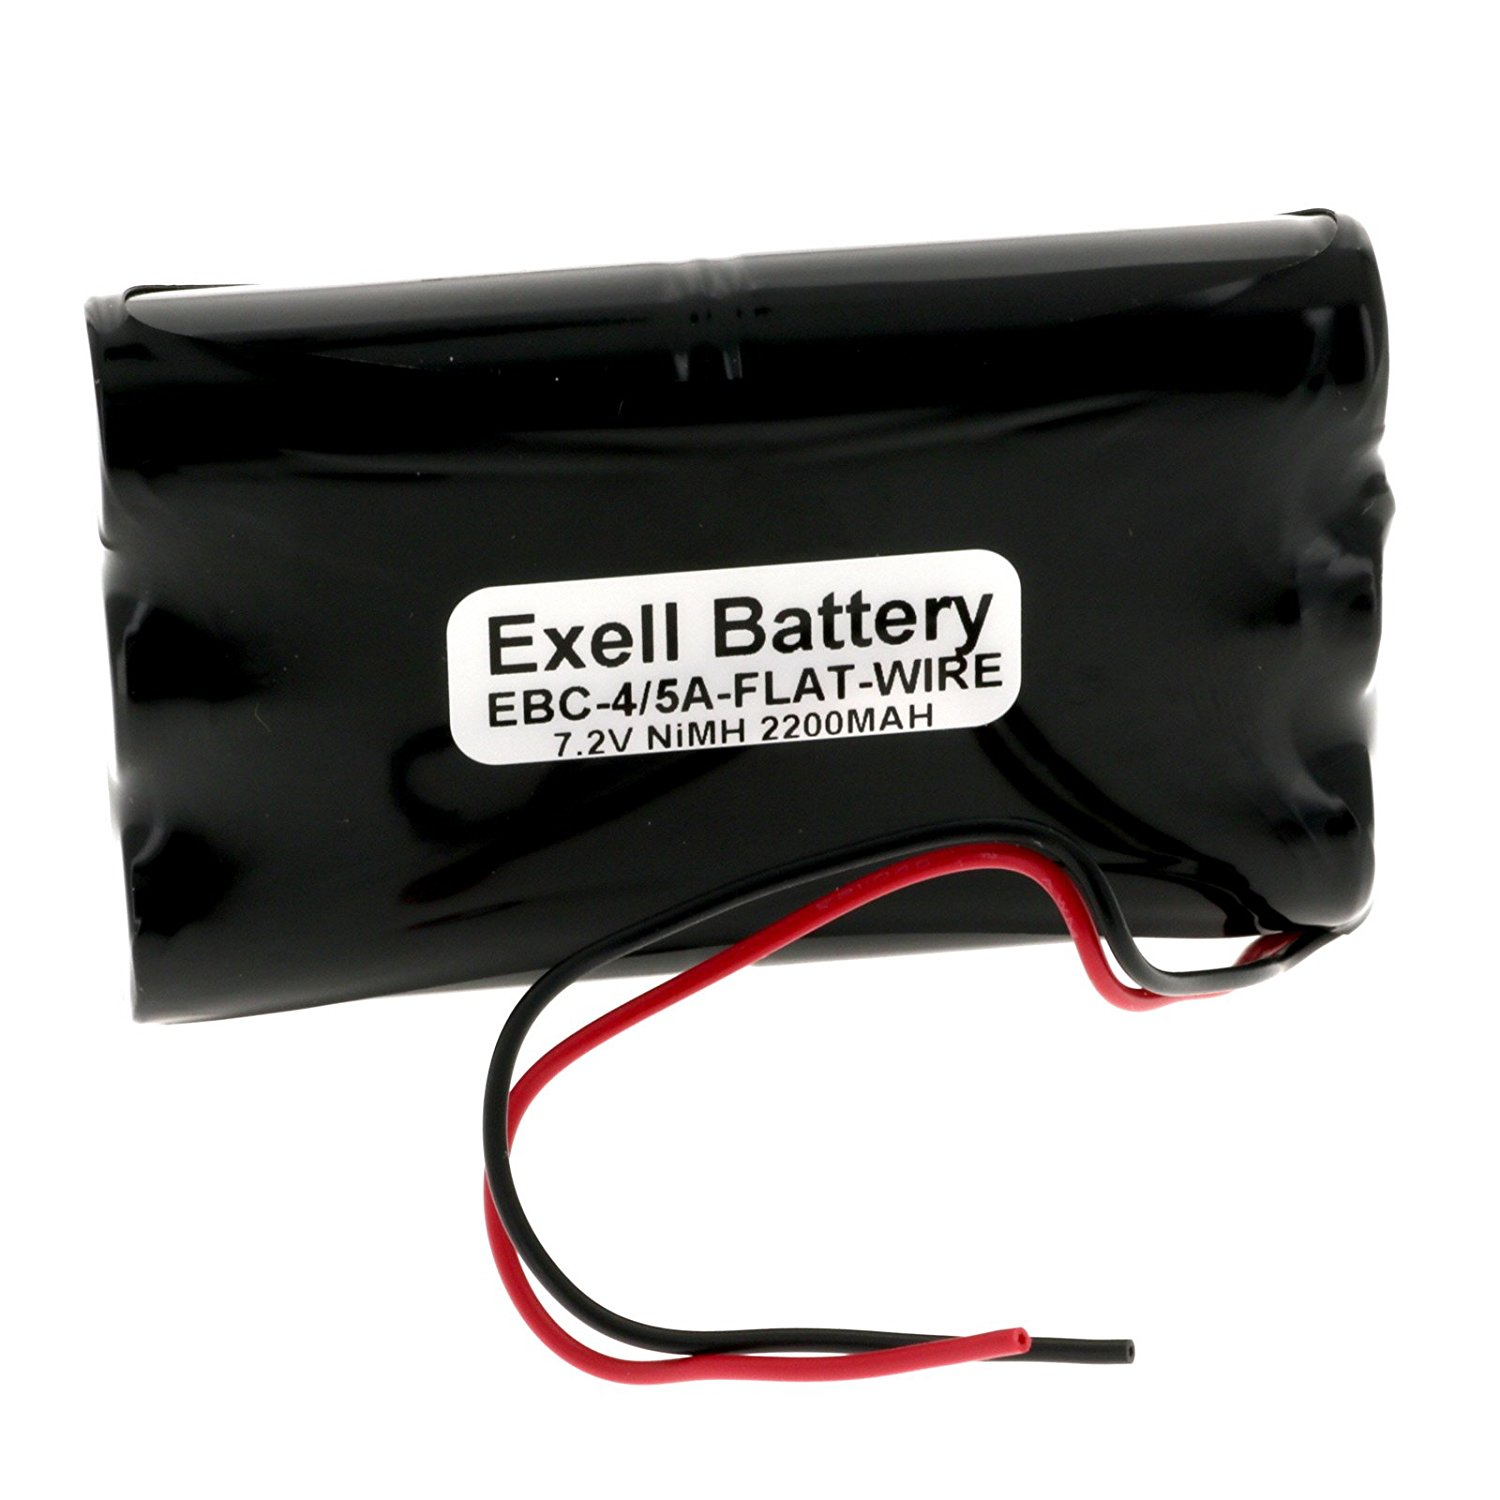 Exell 7.2V 2200mAh NiMH Battery w/ Wire Leads Hobby Packs RC Cars Remotes